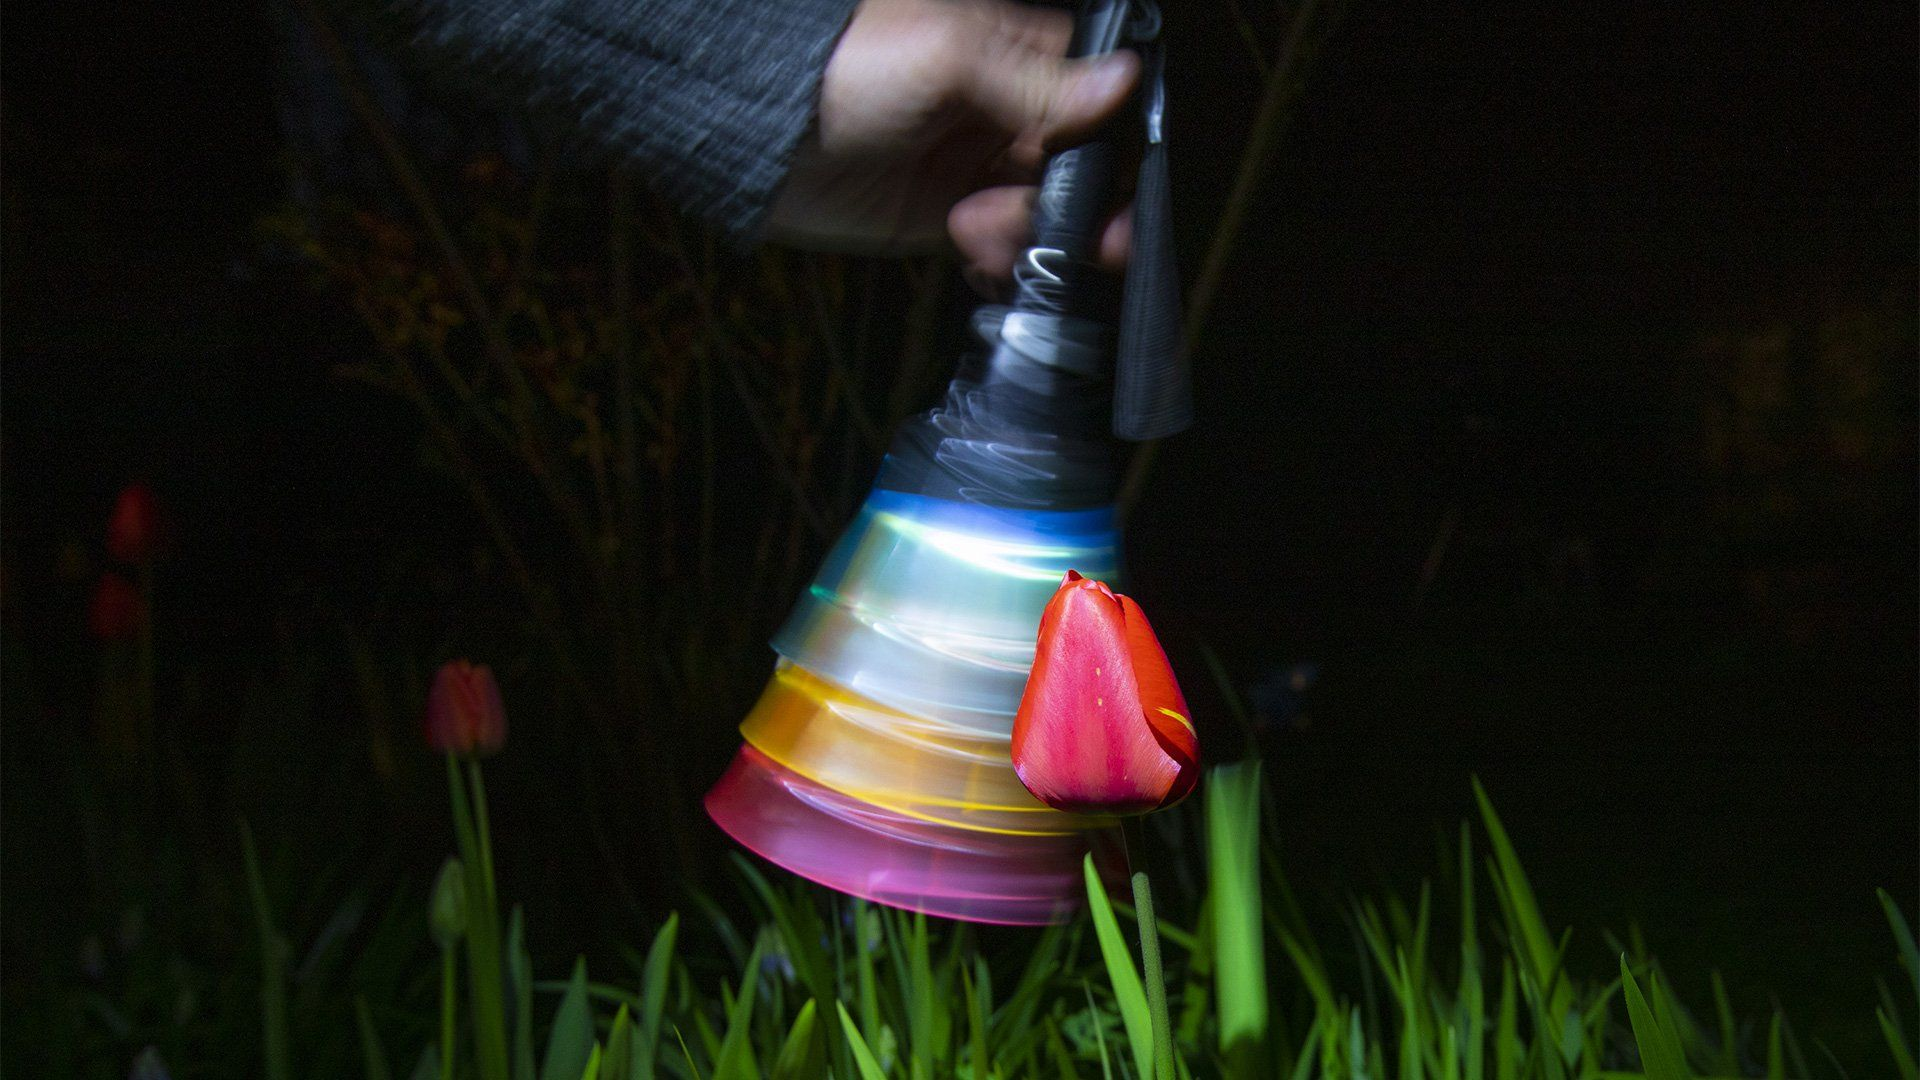 A hand waves a torch with colourful cups taped to the end, causing it to blur.